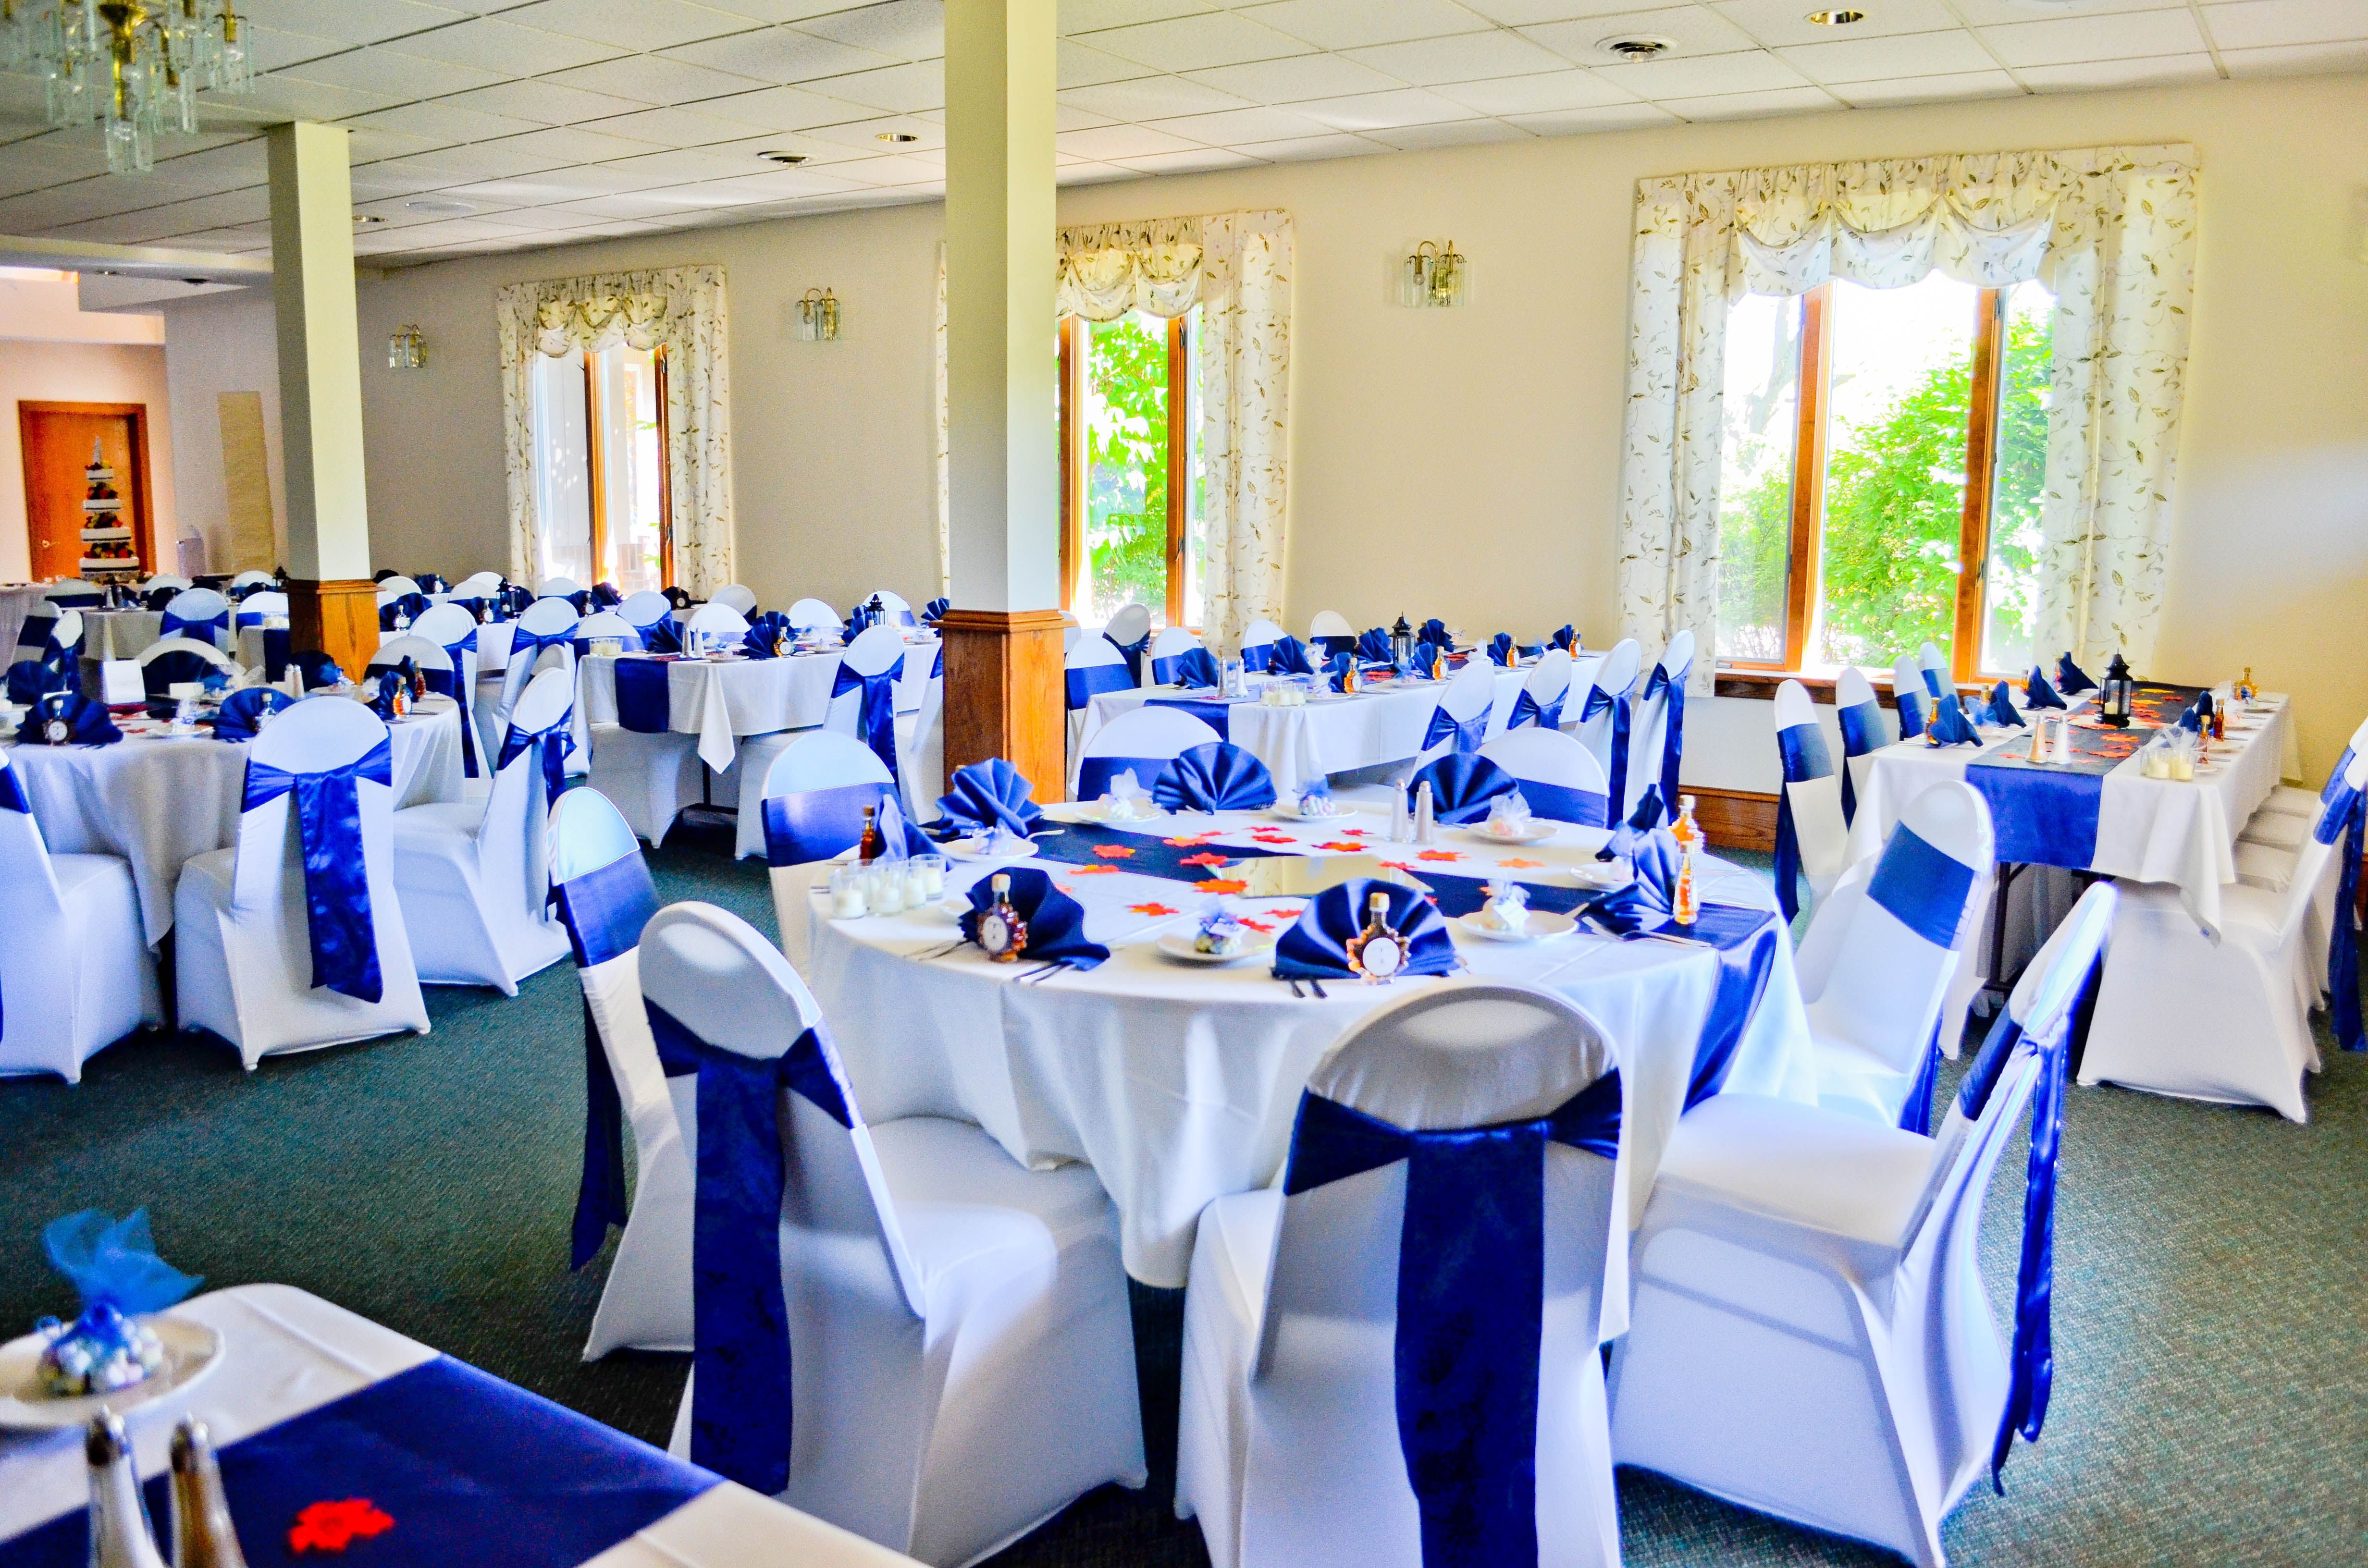 Event Black & White Spandex Chair Covers Purple Satin Sashes White Polyester Tablecloths Damask Table Runners Purple Mirrored Vases & Lavende…